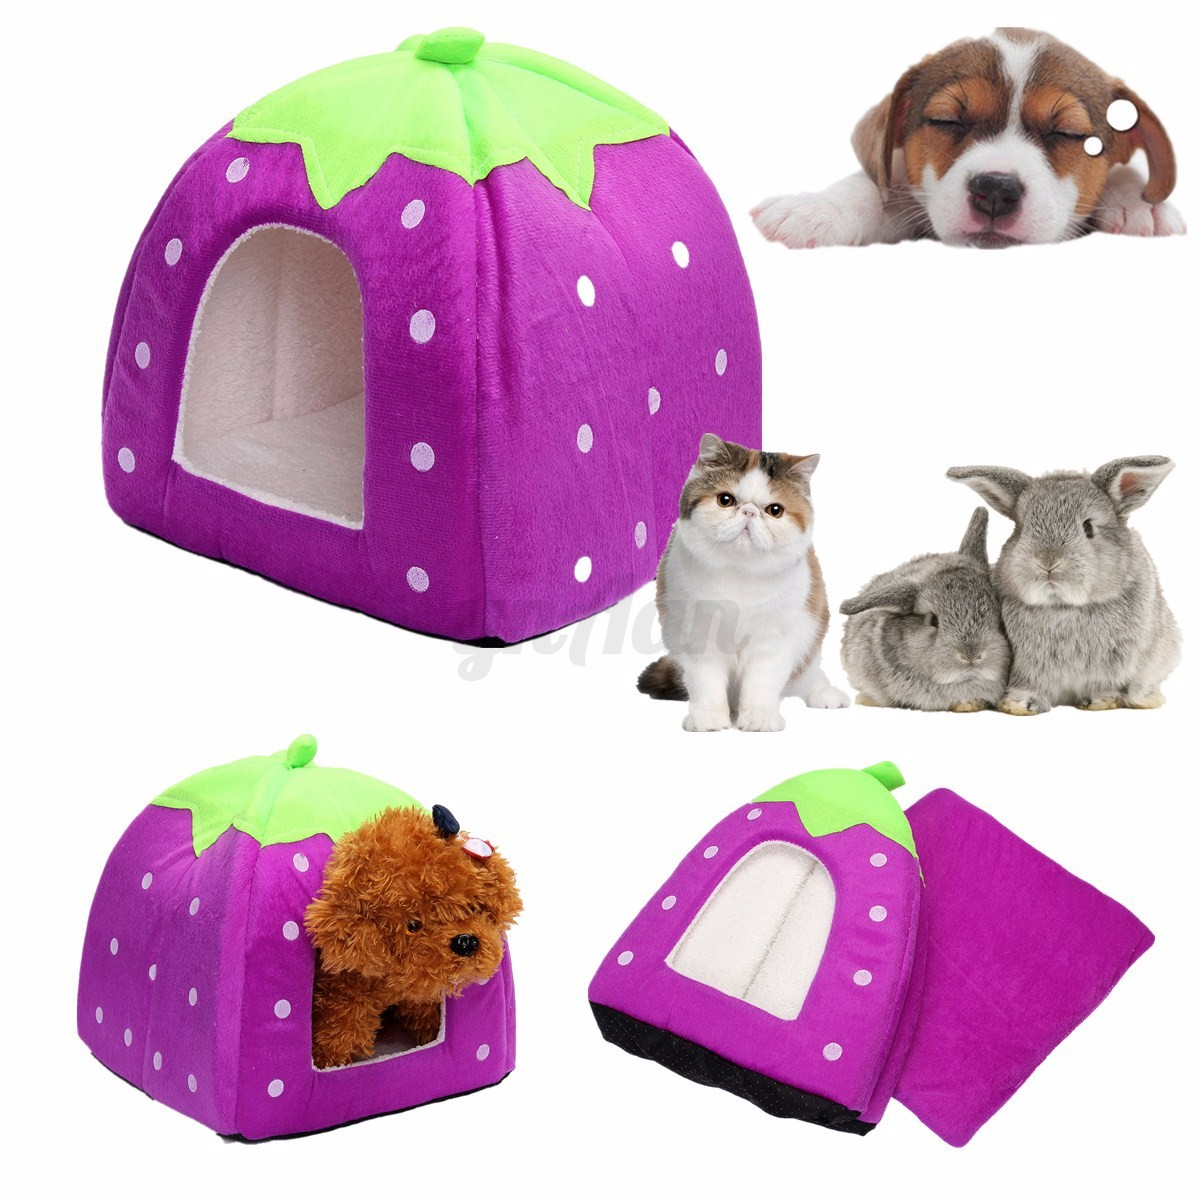 Soft Pet Dog Cat Teddy Cozy Bed Nest House Kennel Warm Cushion Basket Pad Mat